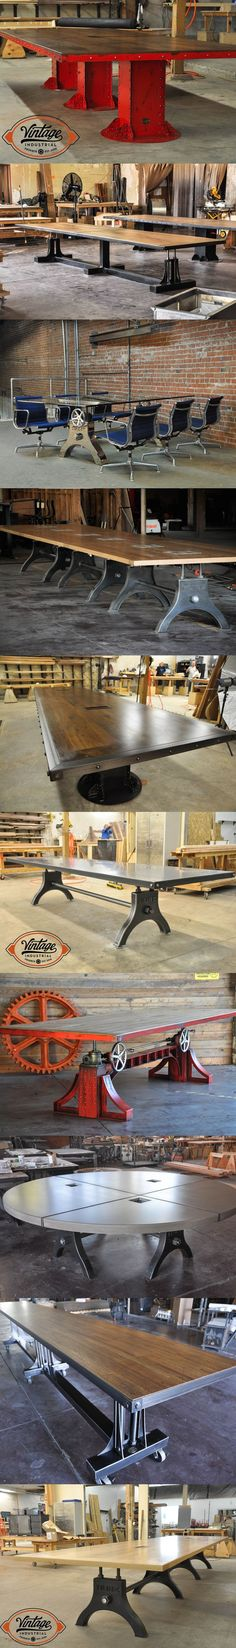 Vintage Industrial offers several conference table options that are all customizable with size, finish, color, dataport, and top material. We build to order in Phoenix and ship everywhere!: